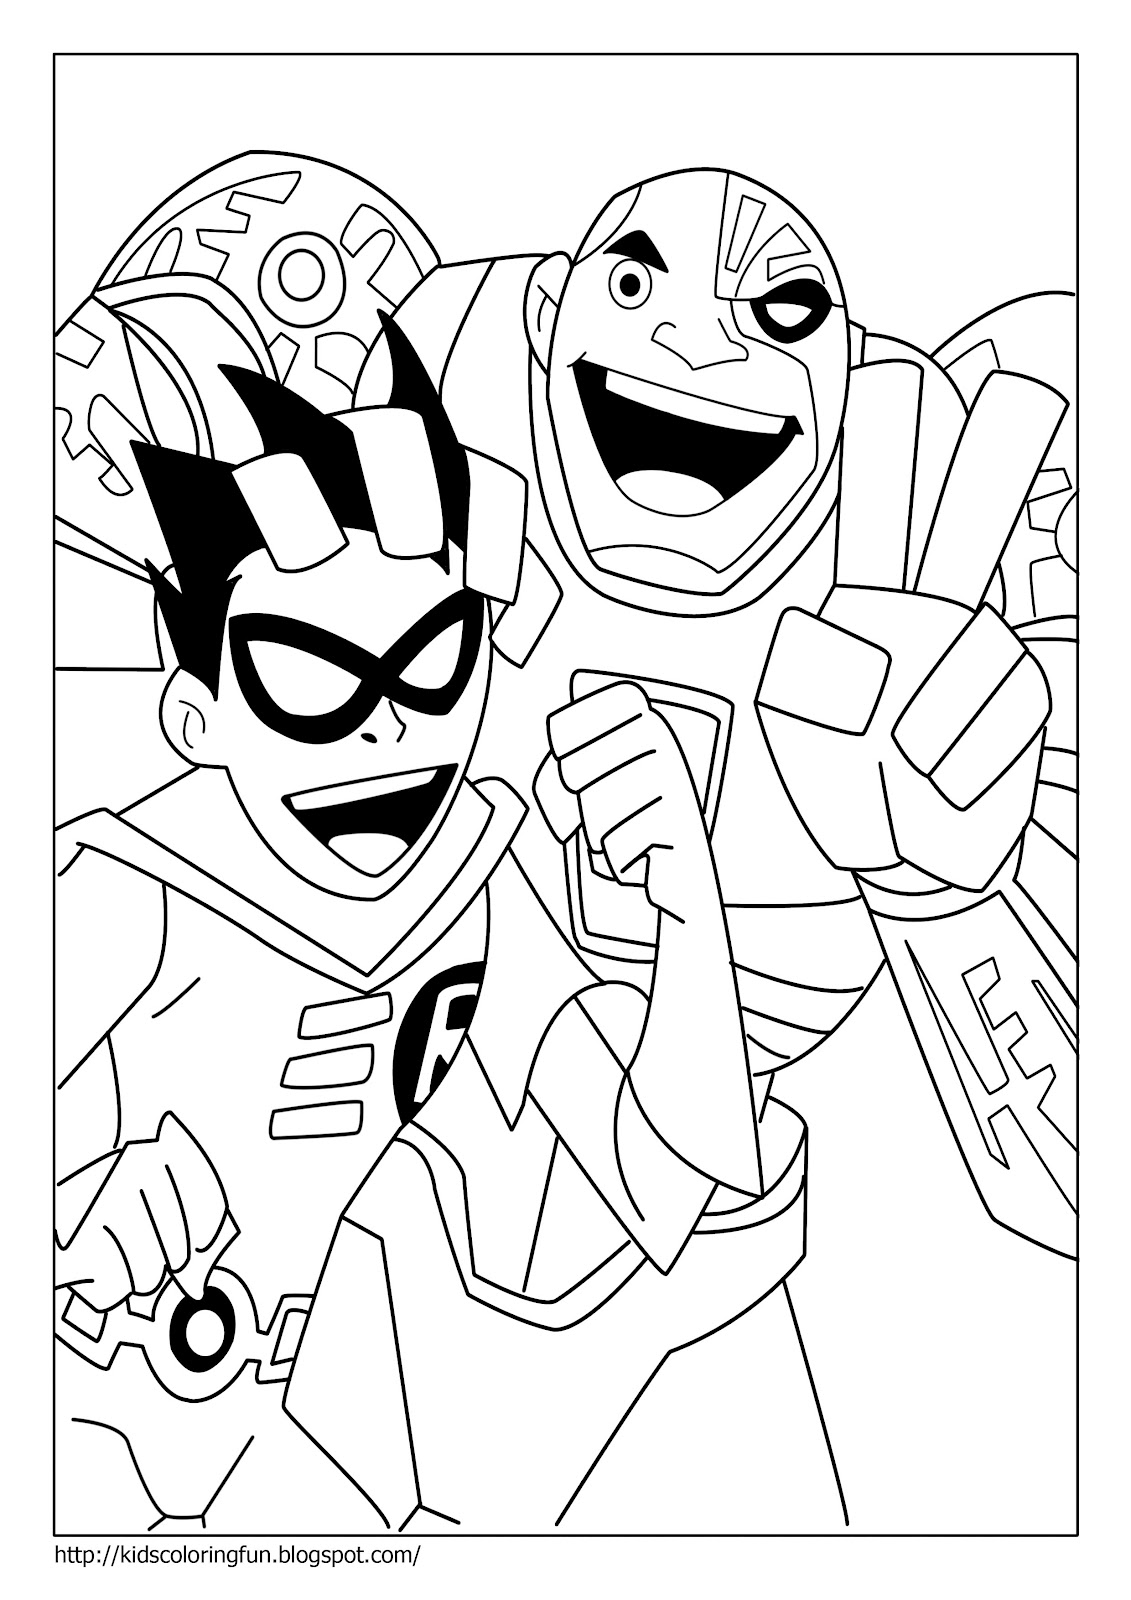 teen titans coloring pages the best free teen coloring page images download from 707 teen coloring titans pages